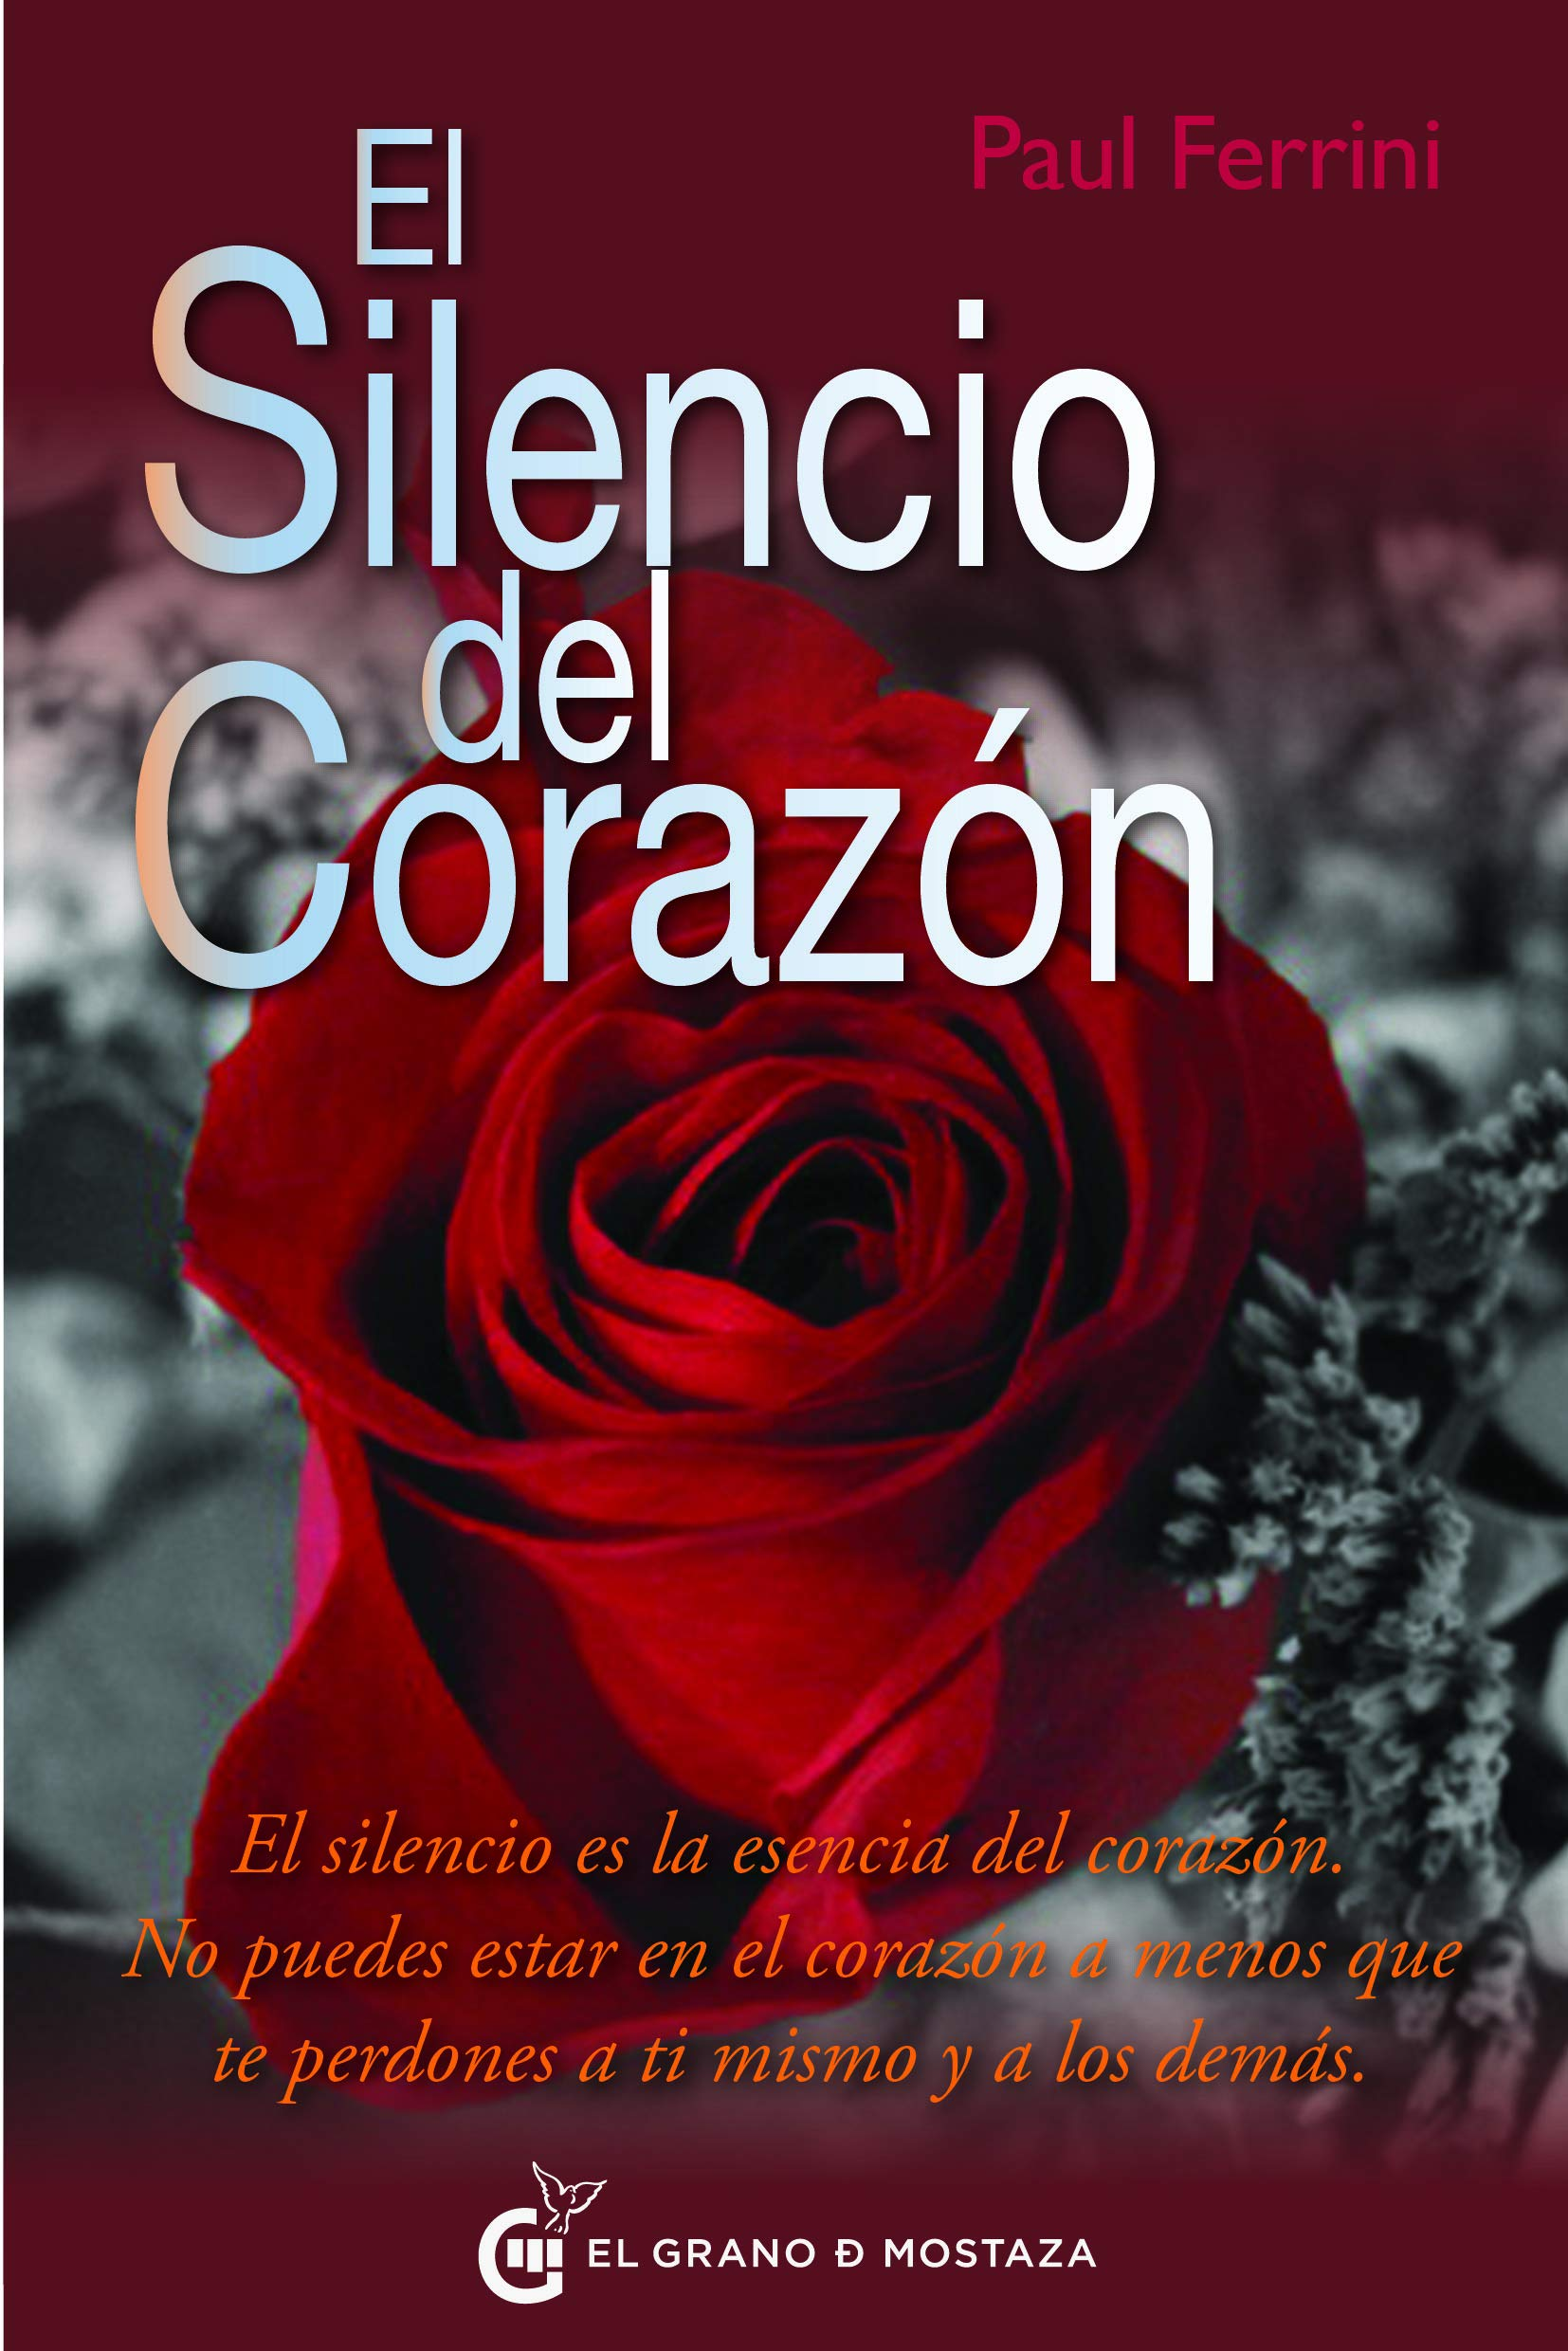 Silencio del corazon, El (Spanish Edition): Paul Ferrini ...